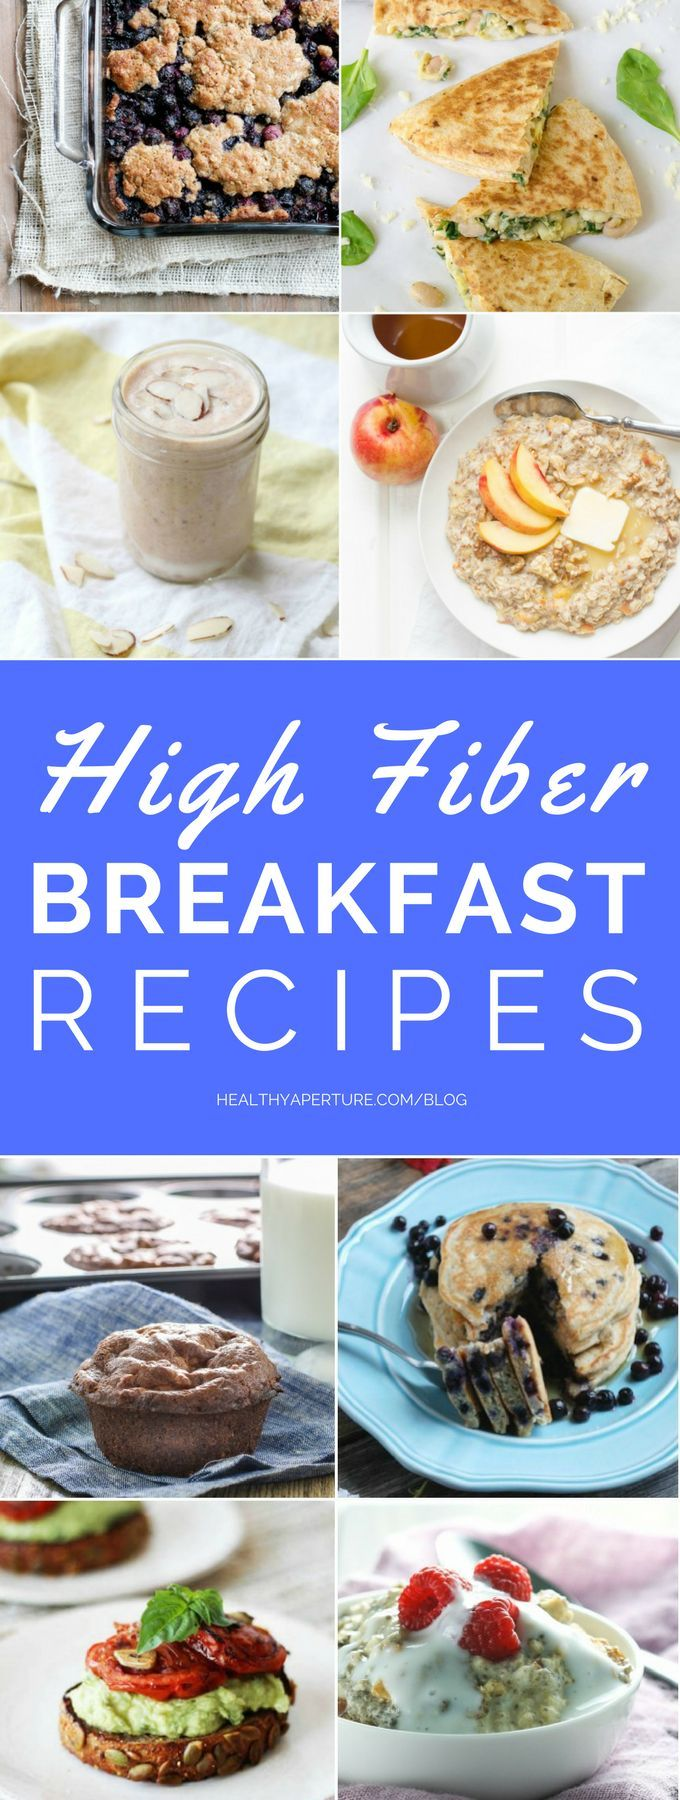 These High Fiber Breakfast Recipes are packed with healthy ingredients and will help keep you full until lunch time.